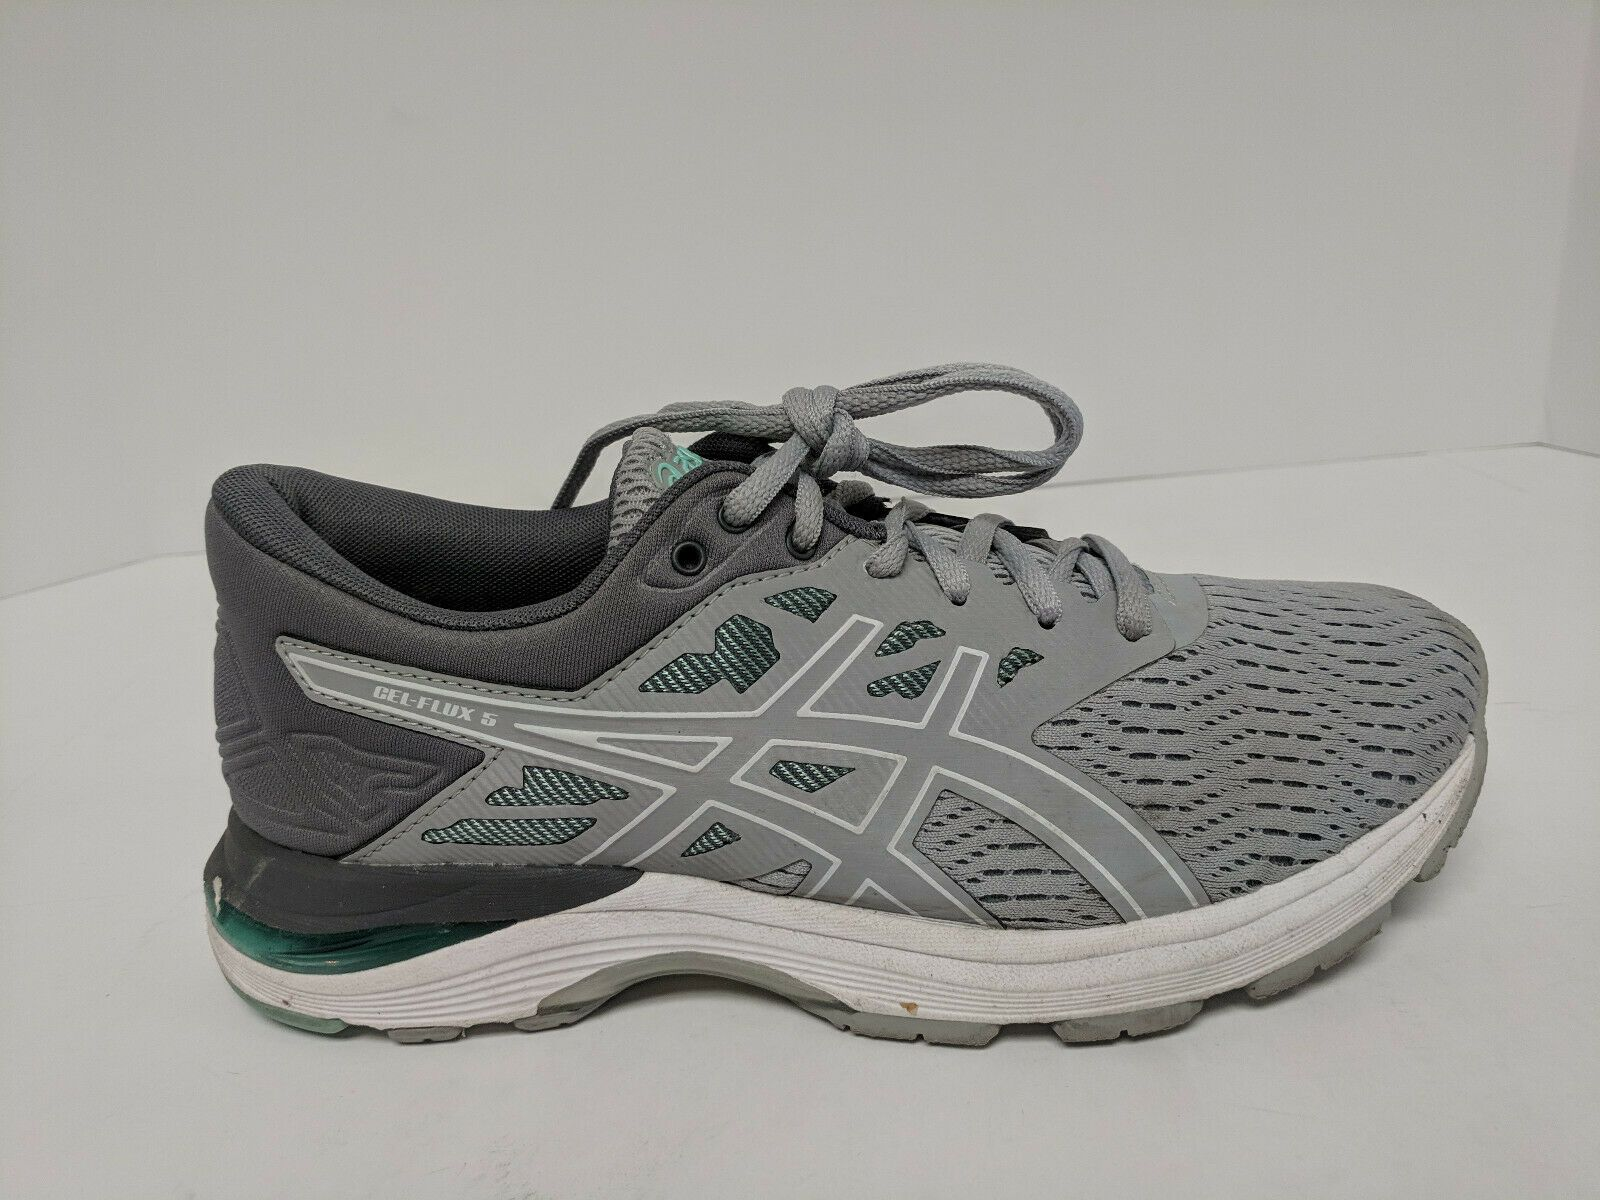 Asics Gel Flux 5 Running Shoes Mid Grey White Green Womens 6 5 Wide Asics Shoes For Women Ideas Of Asics S In 2020 Walking Shoes Women Asics Shoes Clearance Shoes